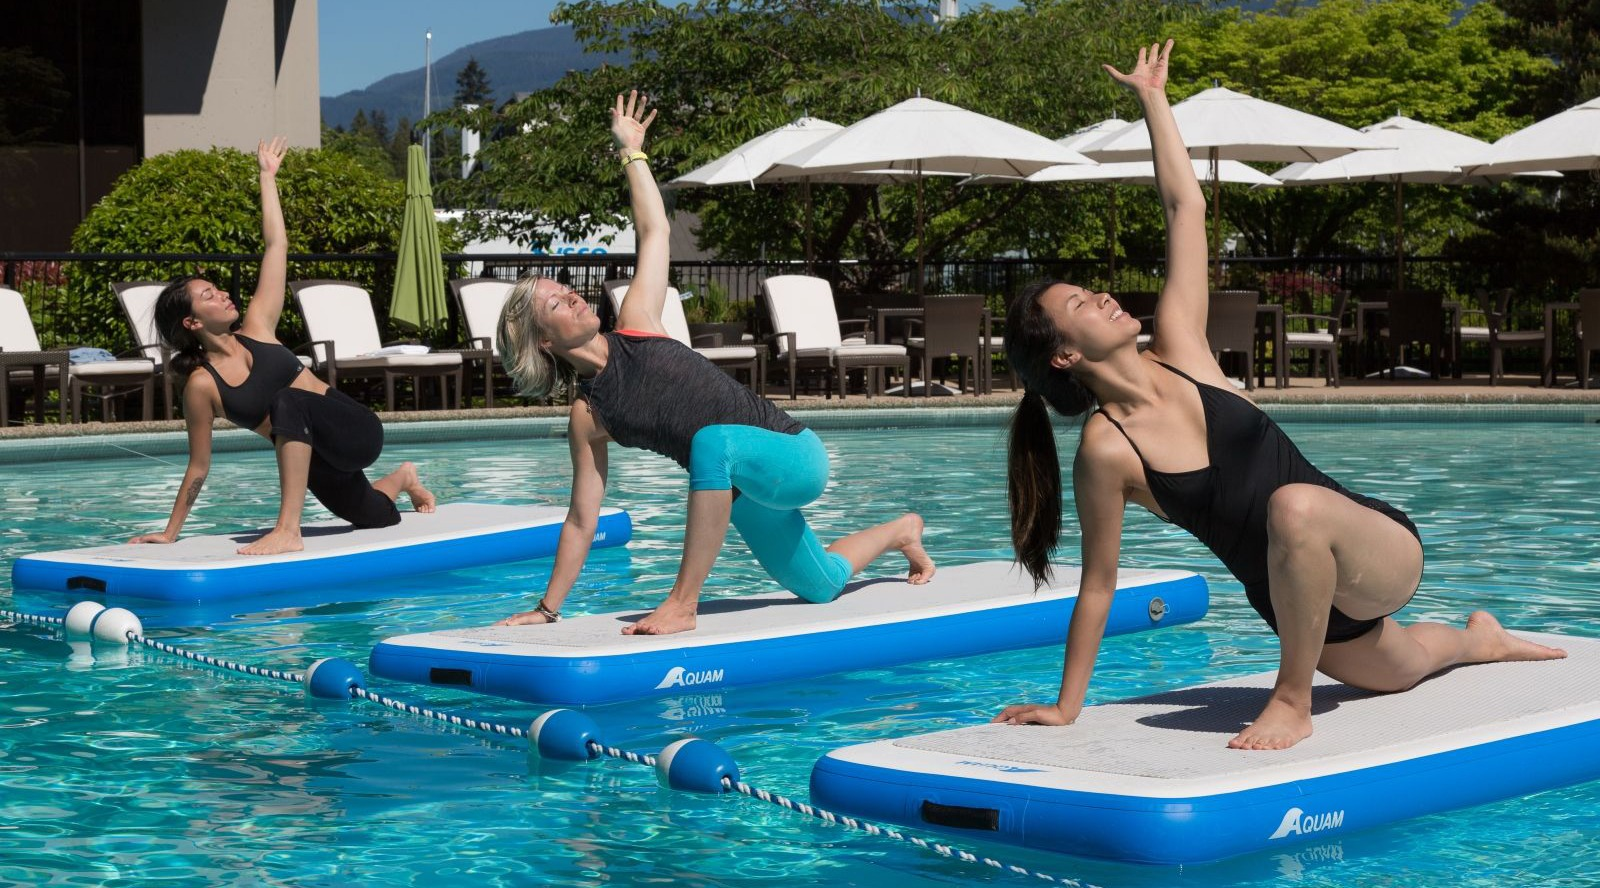 Liquid Yoga on swimming pool inflatables offered at Vancouver hotel